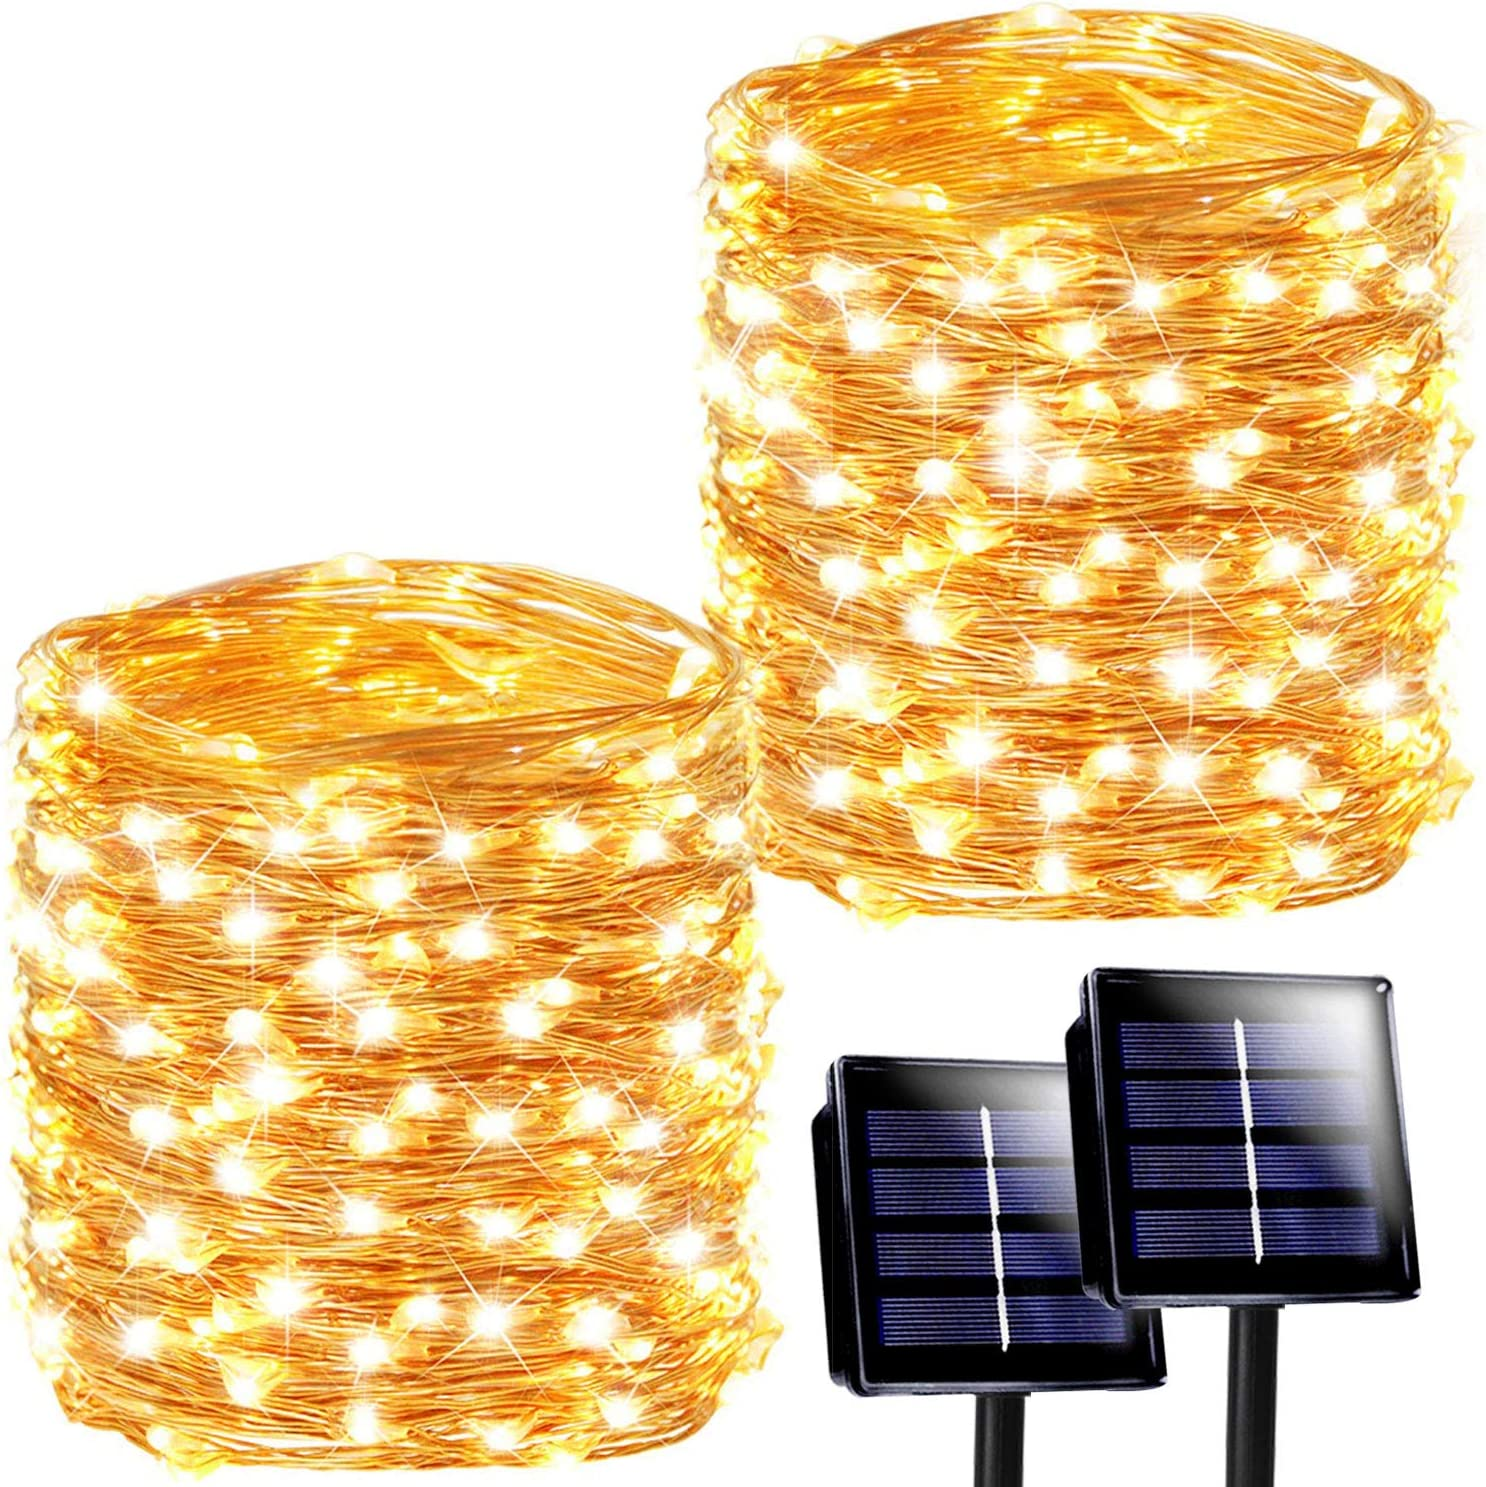 SANJICHA Solar String Lights Outdoor, 2-Pack Each 72FT 200LED Upgraded Super Bright Solar Lights Outdoor, Waterproof Copper Wire 8 Modes Fairy Lights for Garden Patio Party Decorations (Warm White)